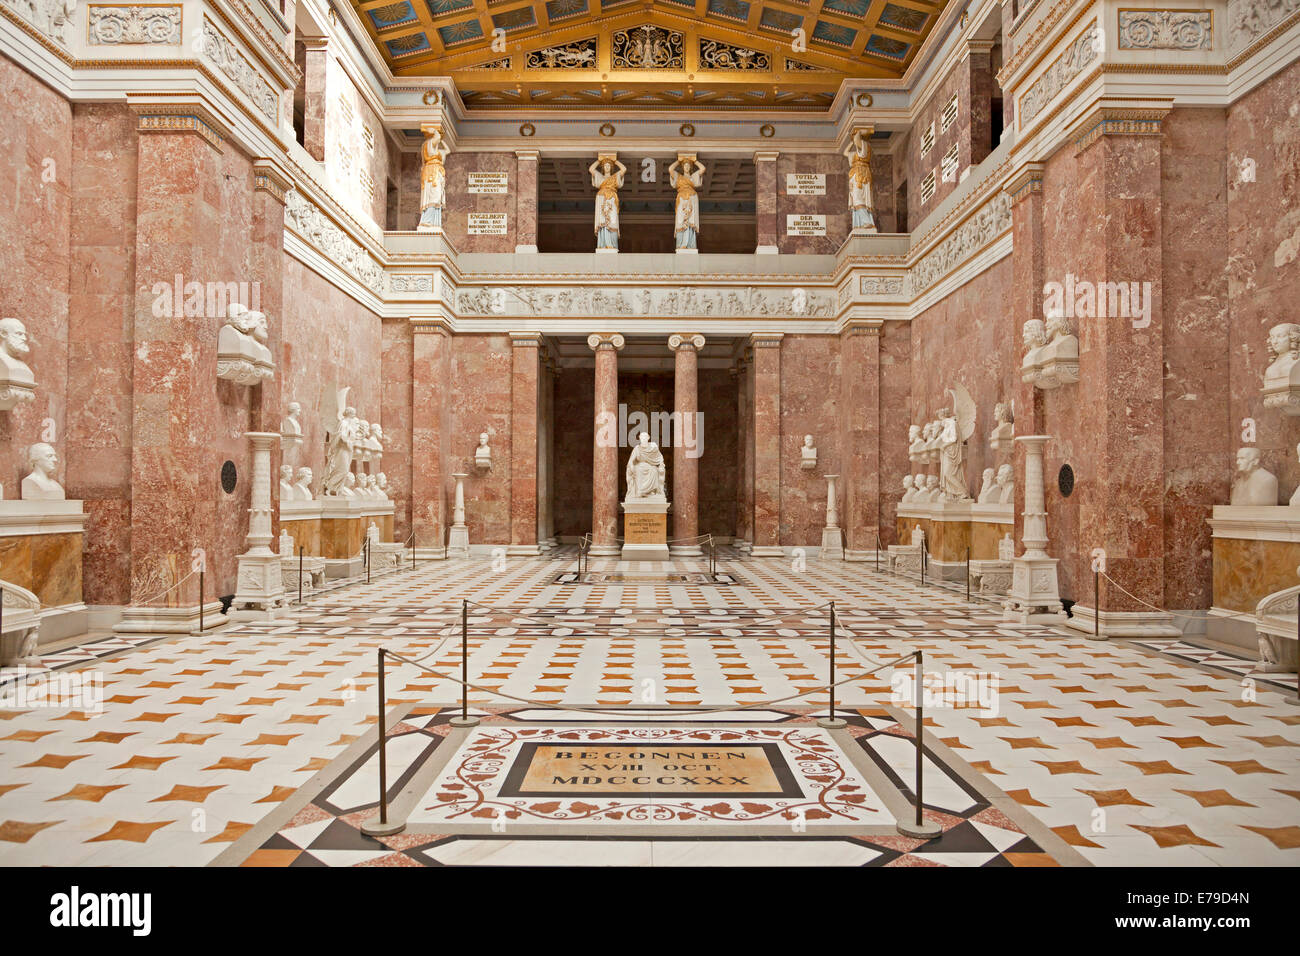 Walhalla memorial - Germany - Blog about interesting places |Inside Walhalla Memorial